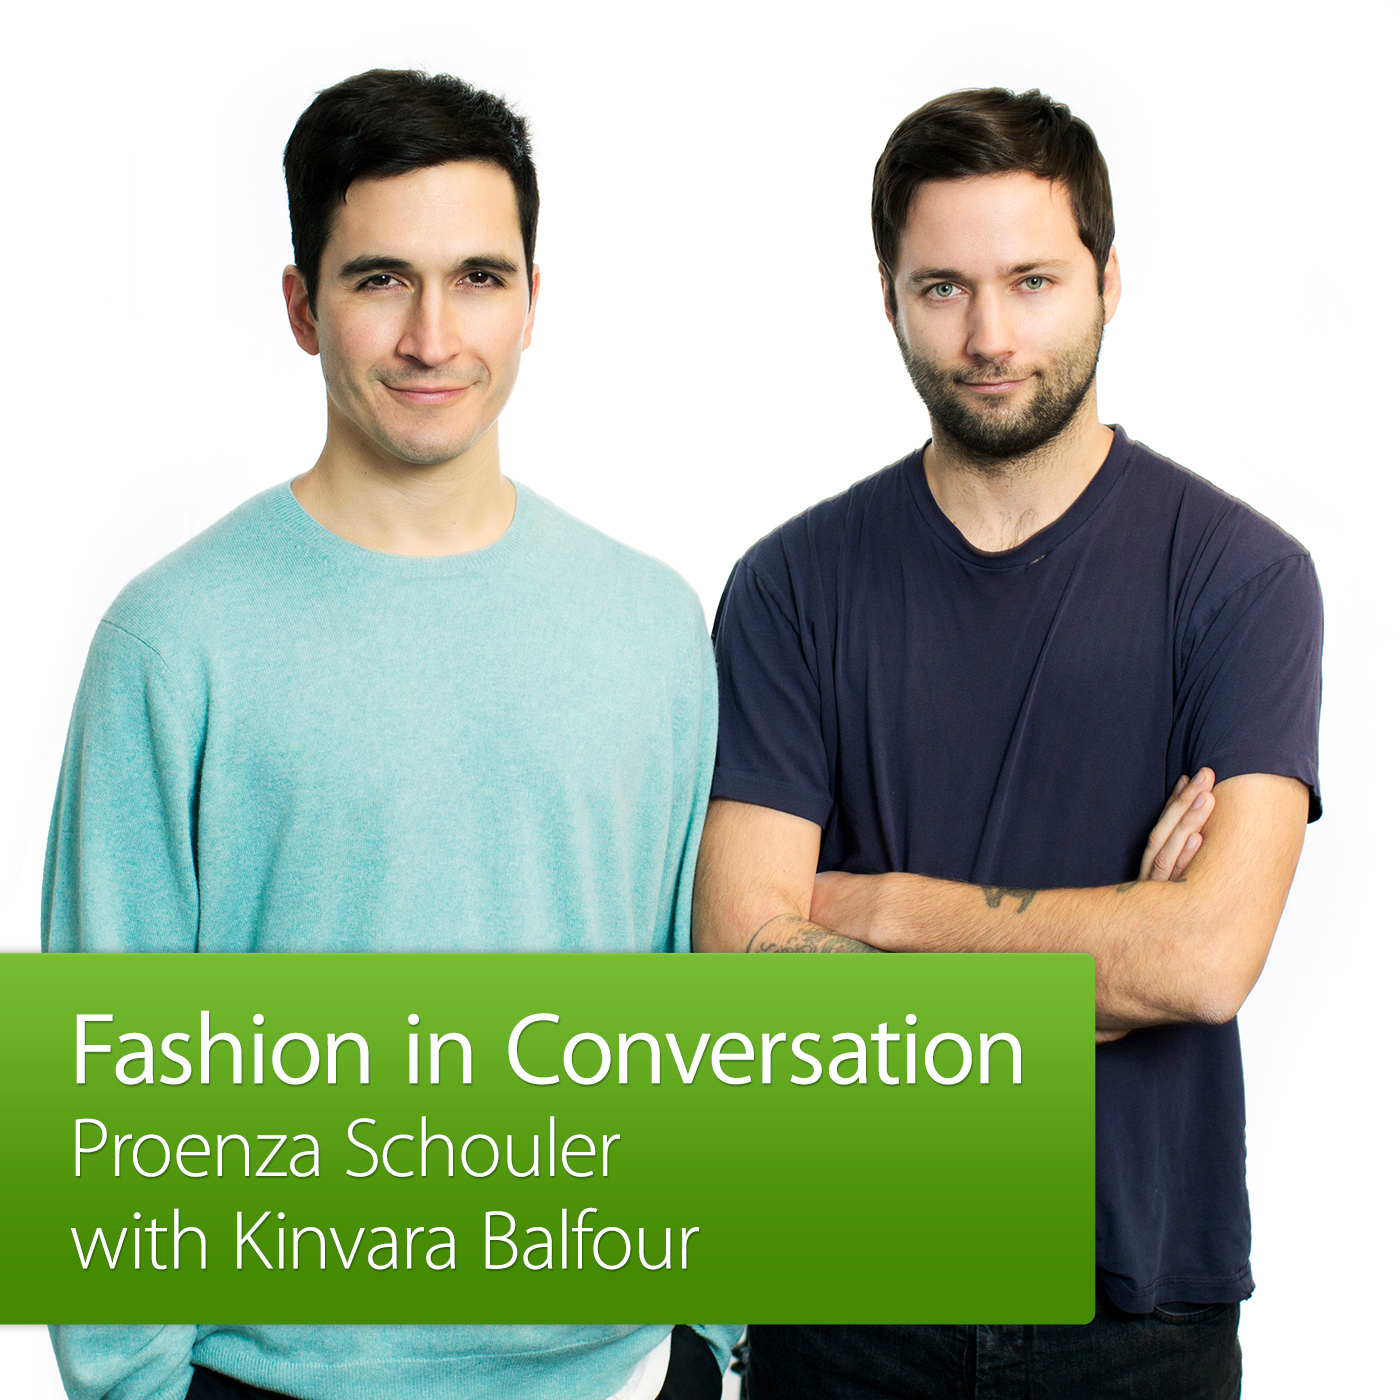 Proenza Schouler with Kinvara Balfour: Fashion in Conversation